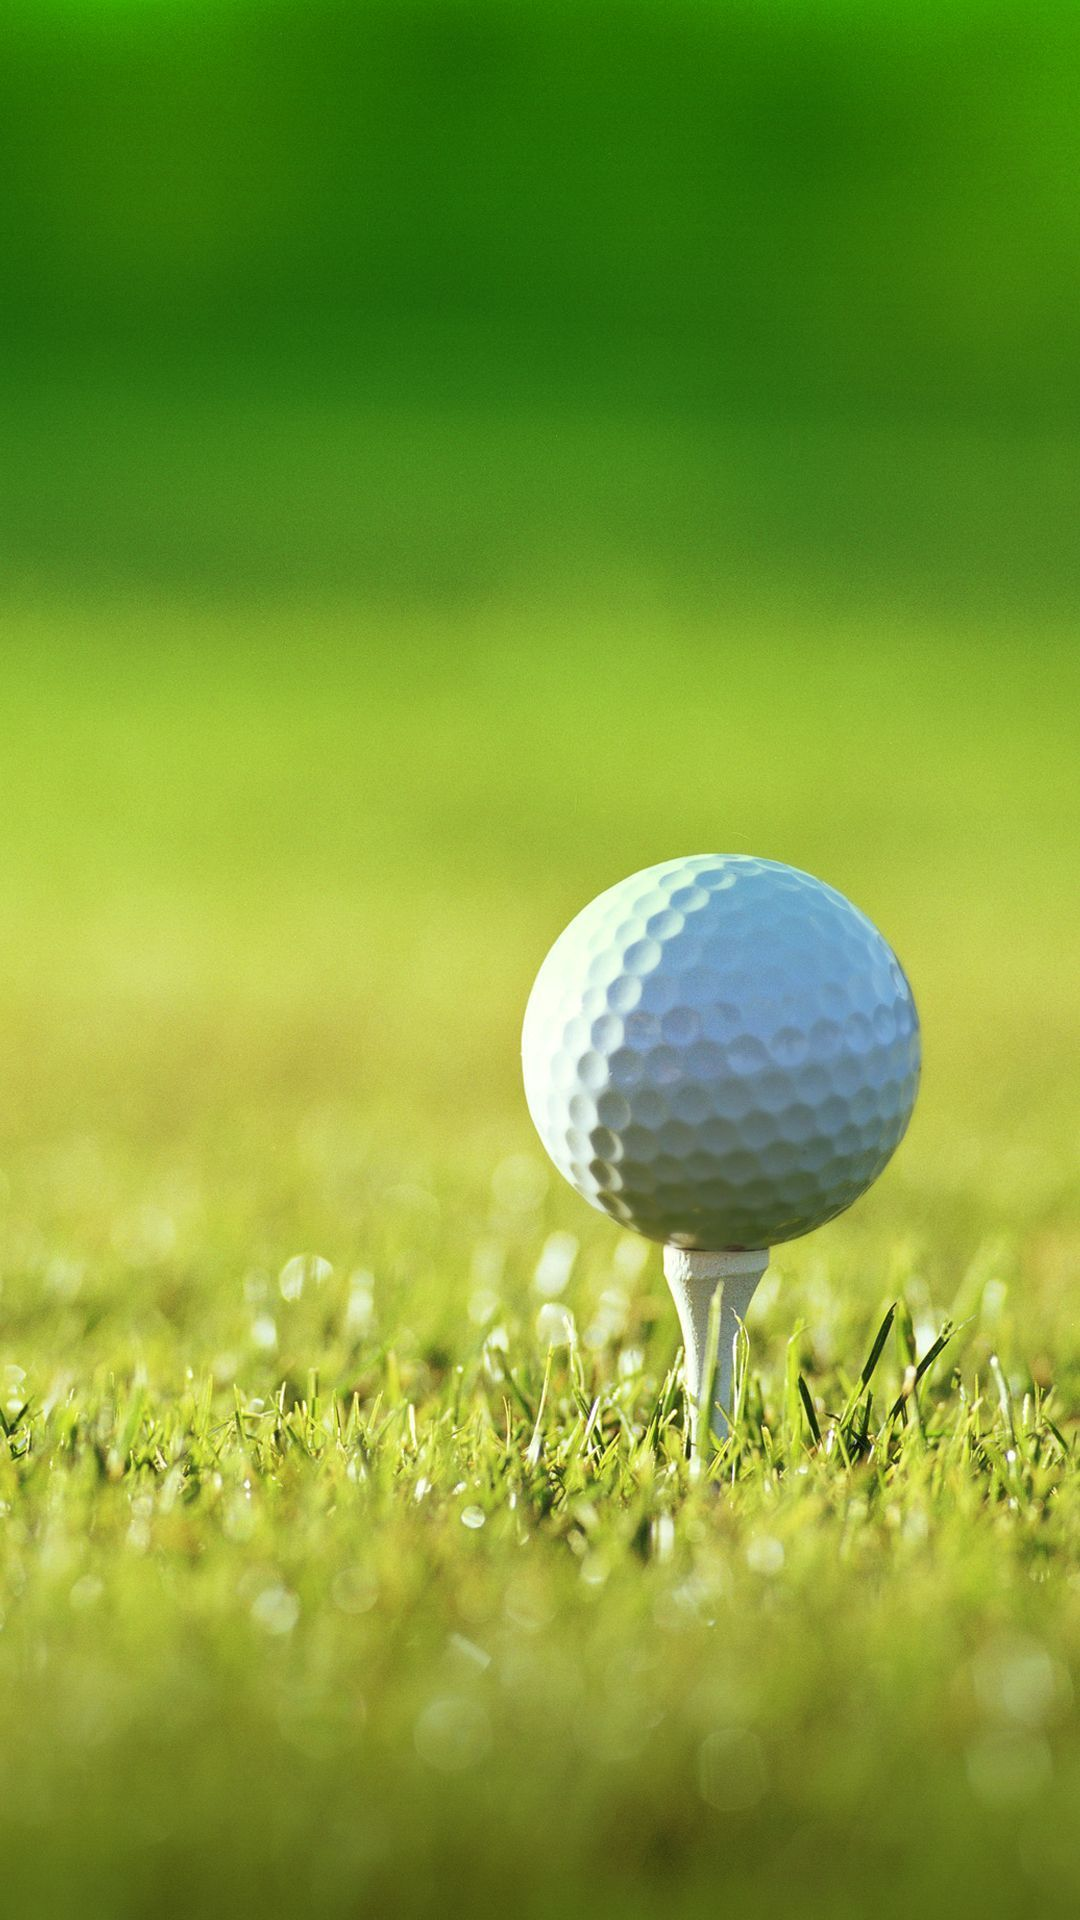 golf for lg nexus 5 hd wallpapers android wallpapers free download